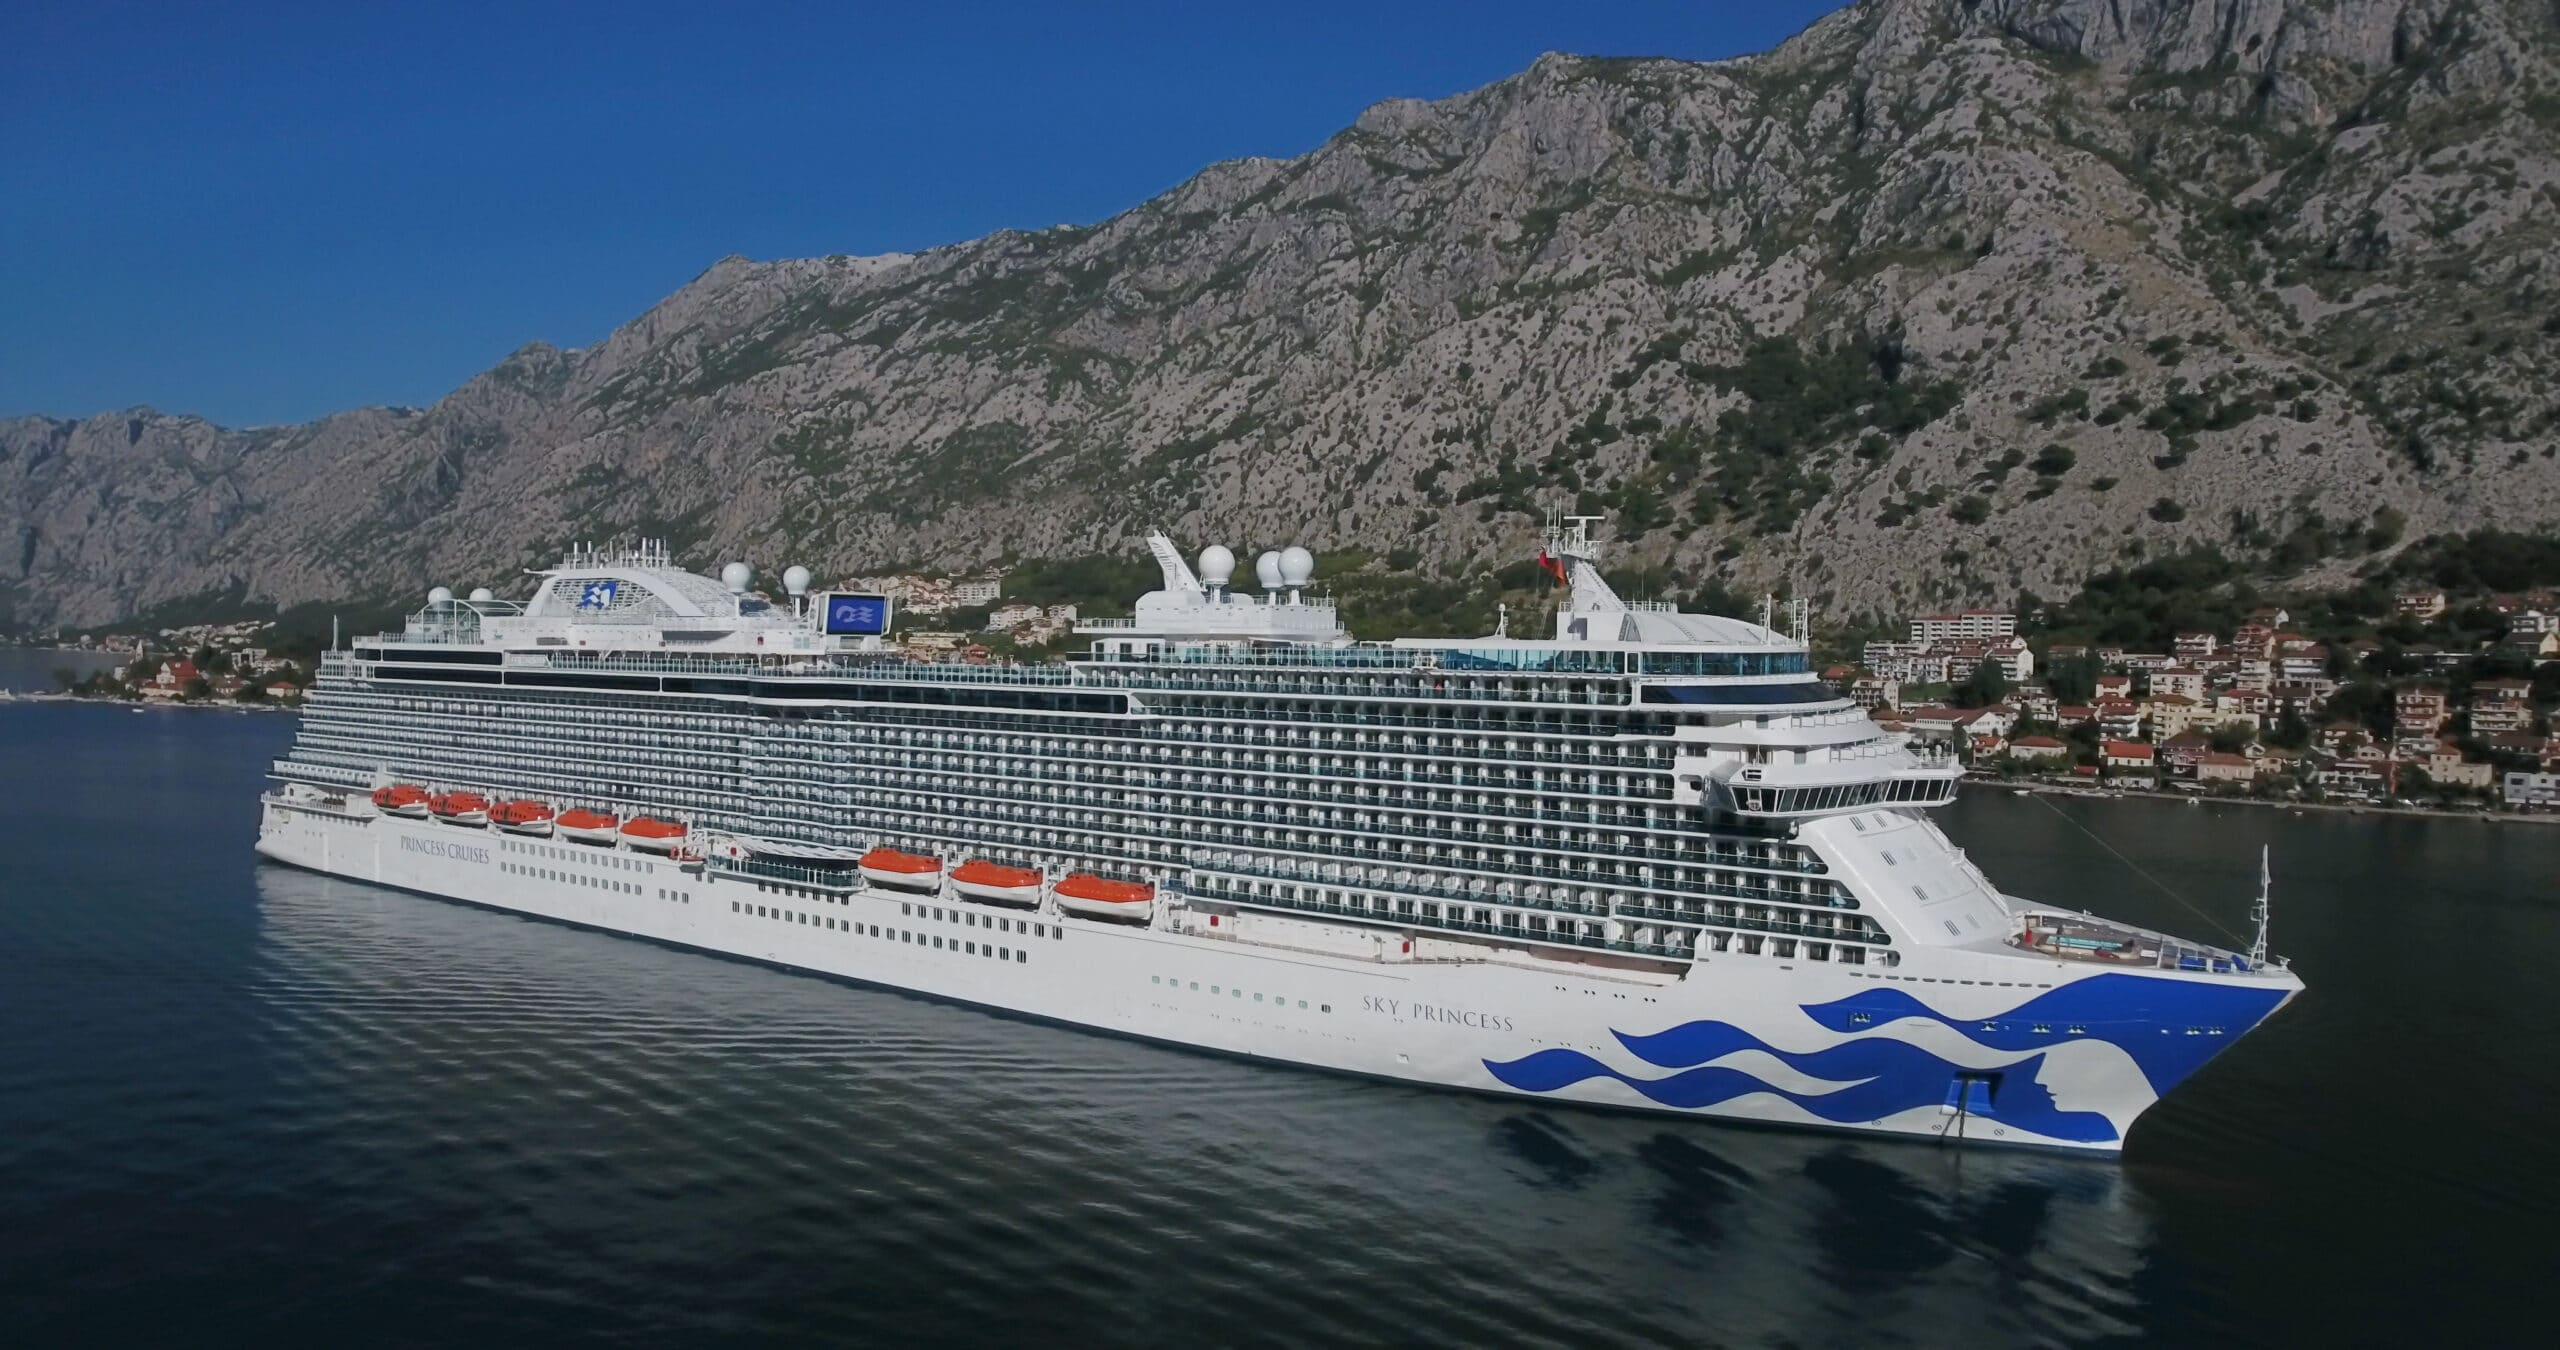 Cruiseschip-Sky Princess-Princess Cruises-Schip